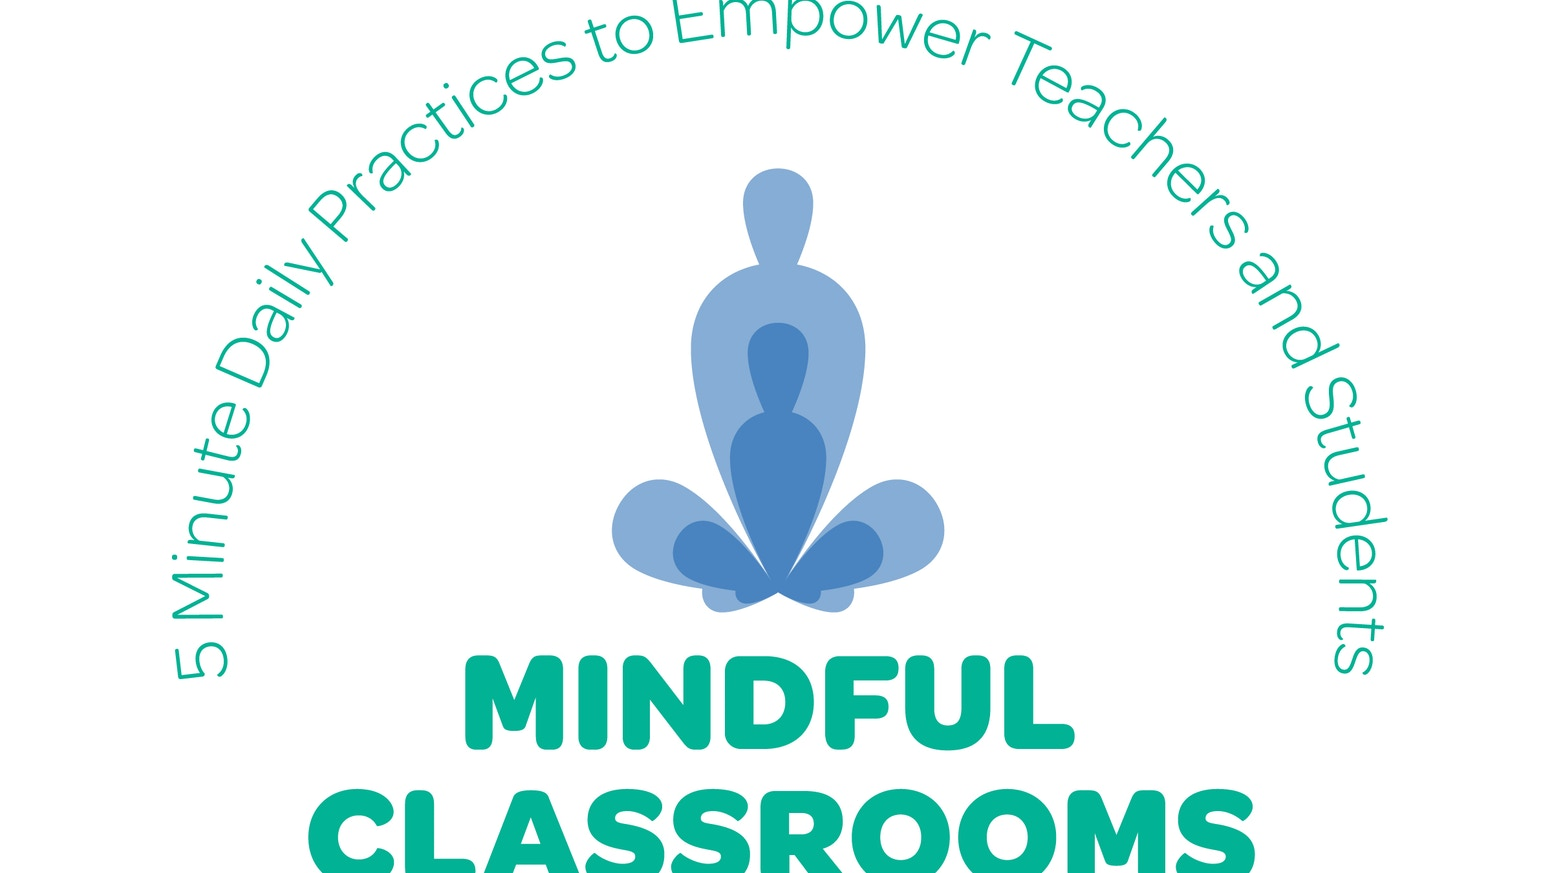 Books, Educator Training Program & Resources by Austin ISD Teacher of the Year bringing mindfulness into classrooms w/ 5-minute daily exercises.